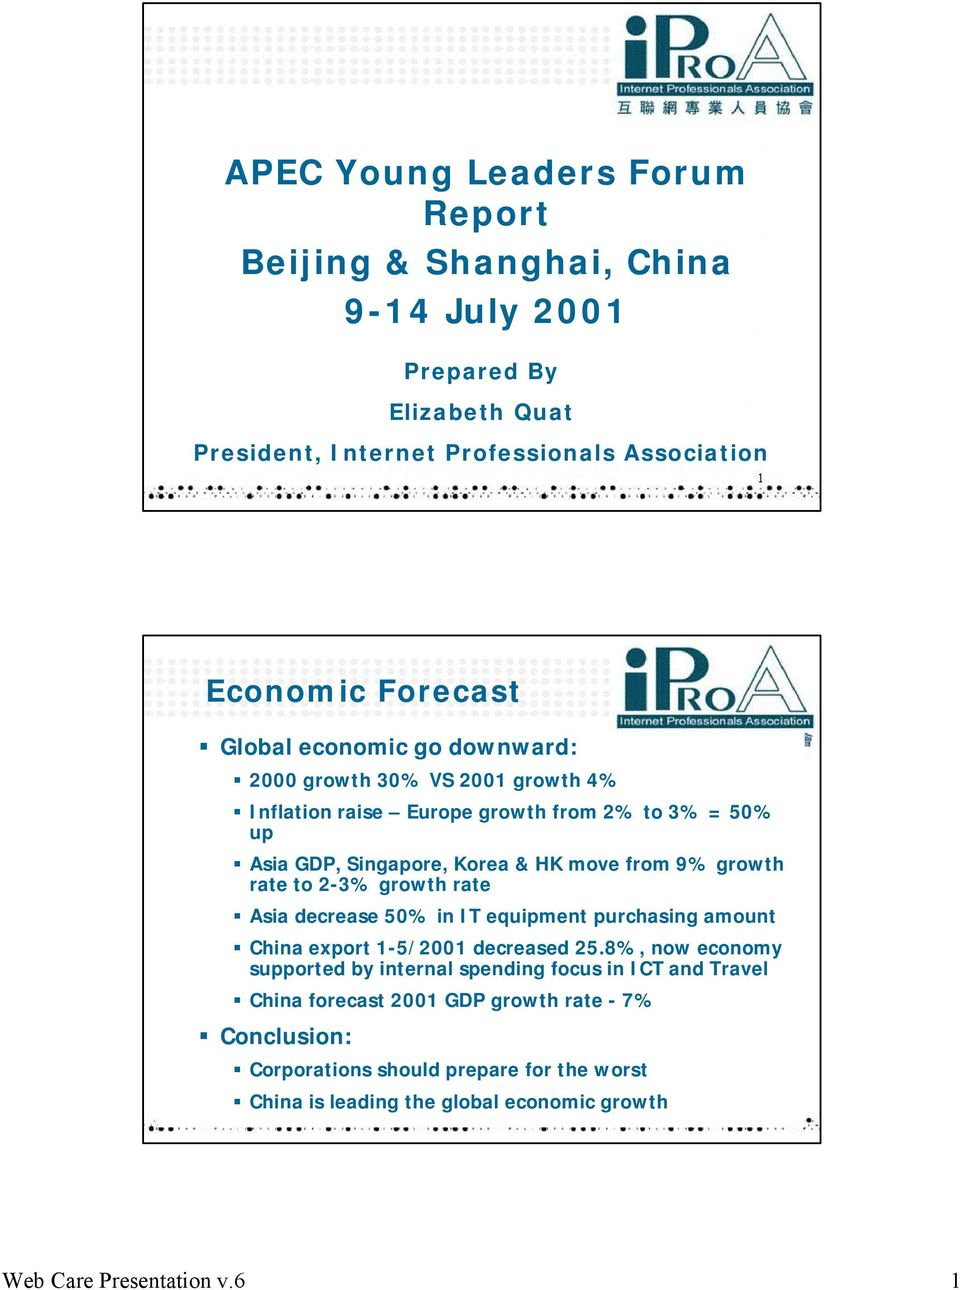 2-3% growth rate Asia decrease 50% in IT equipment purchasing amount China export 1-5/2001 decreased 25.